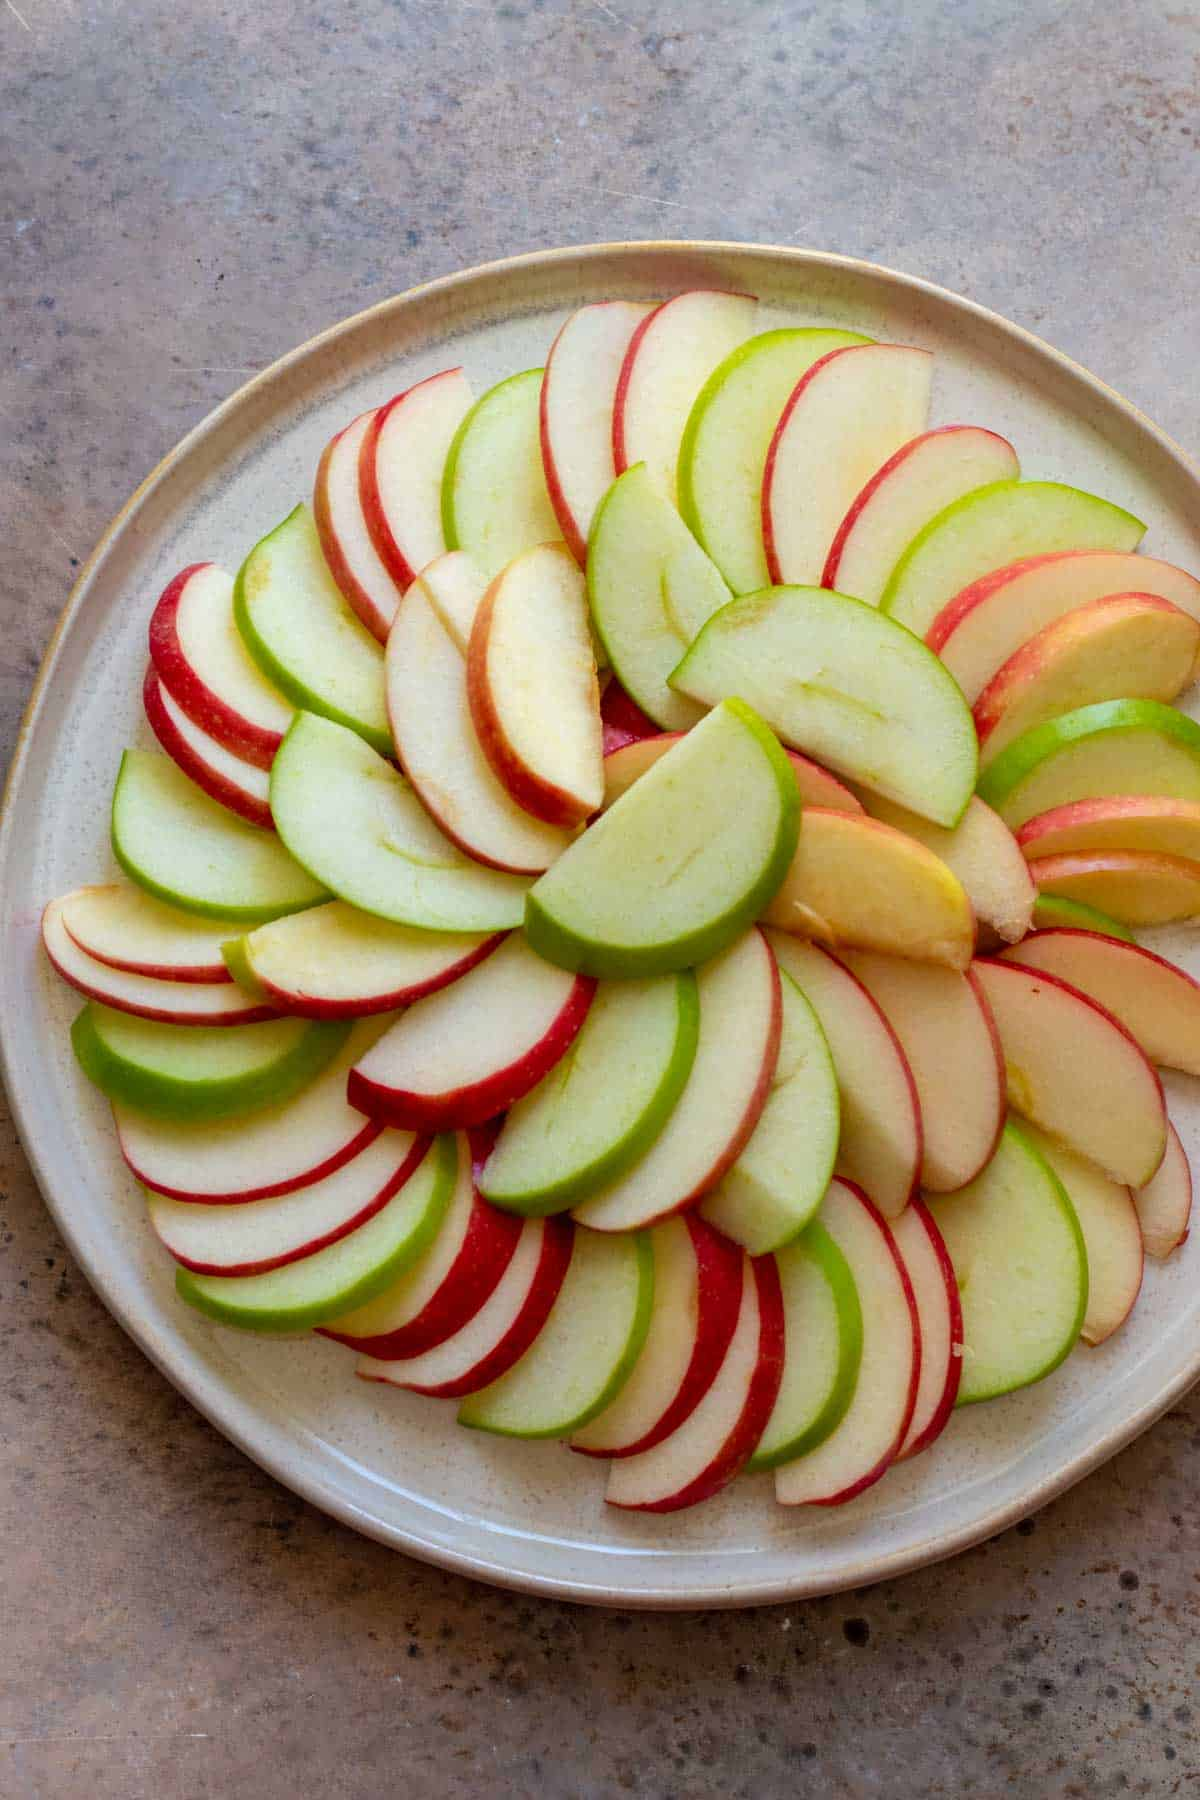 Thinly sliced apples layered on large plate in circular pattern.